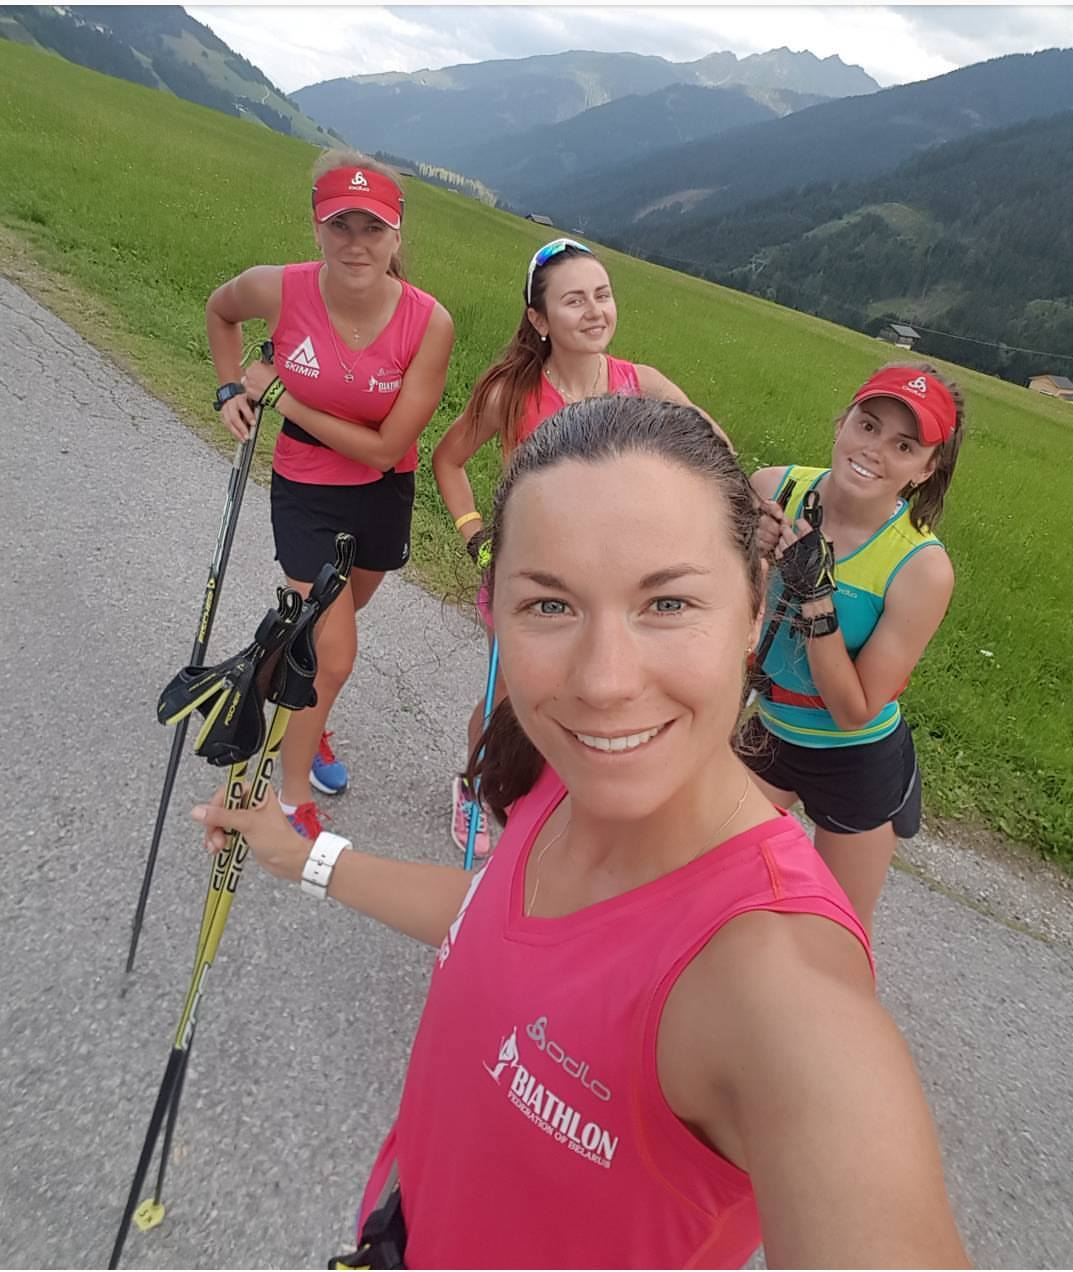 It is all smiles from Nadezhda Skardino and her teammates, enjoying the mountains and nice weather in Obertilliach. Read about mid-summer training in our story below...and smile like these ladies; enjoy your weekend! ?Nadezhda Skardino